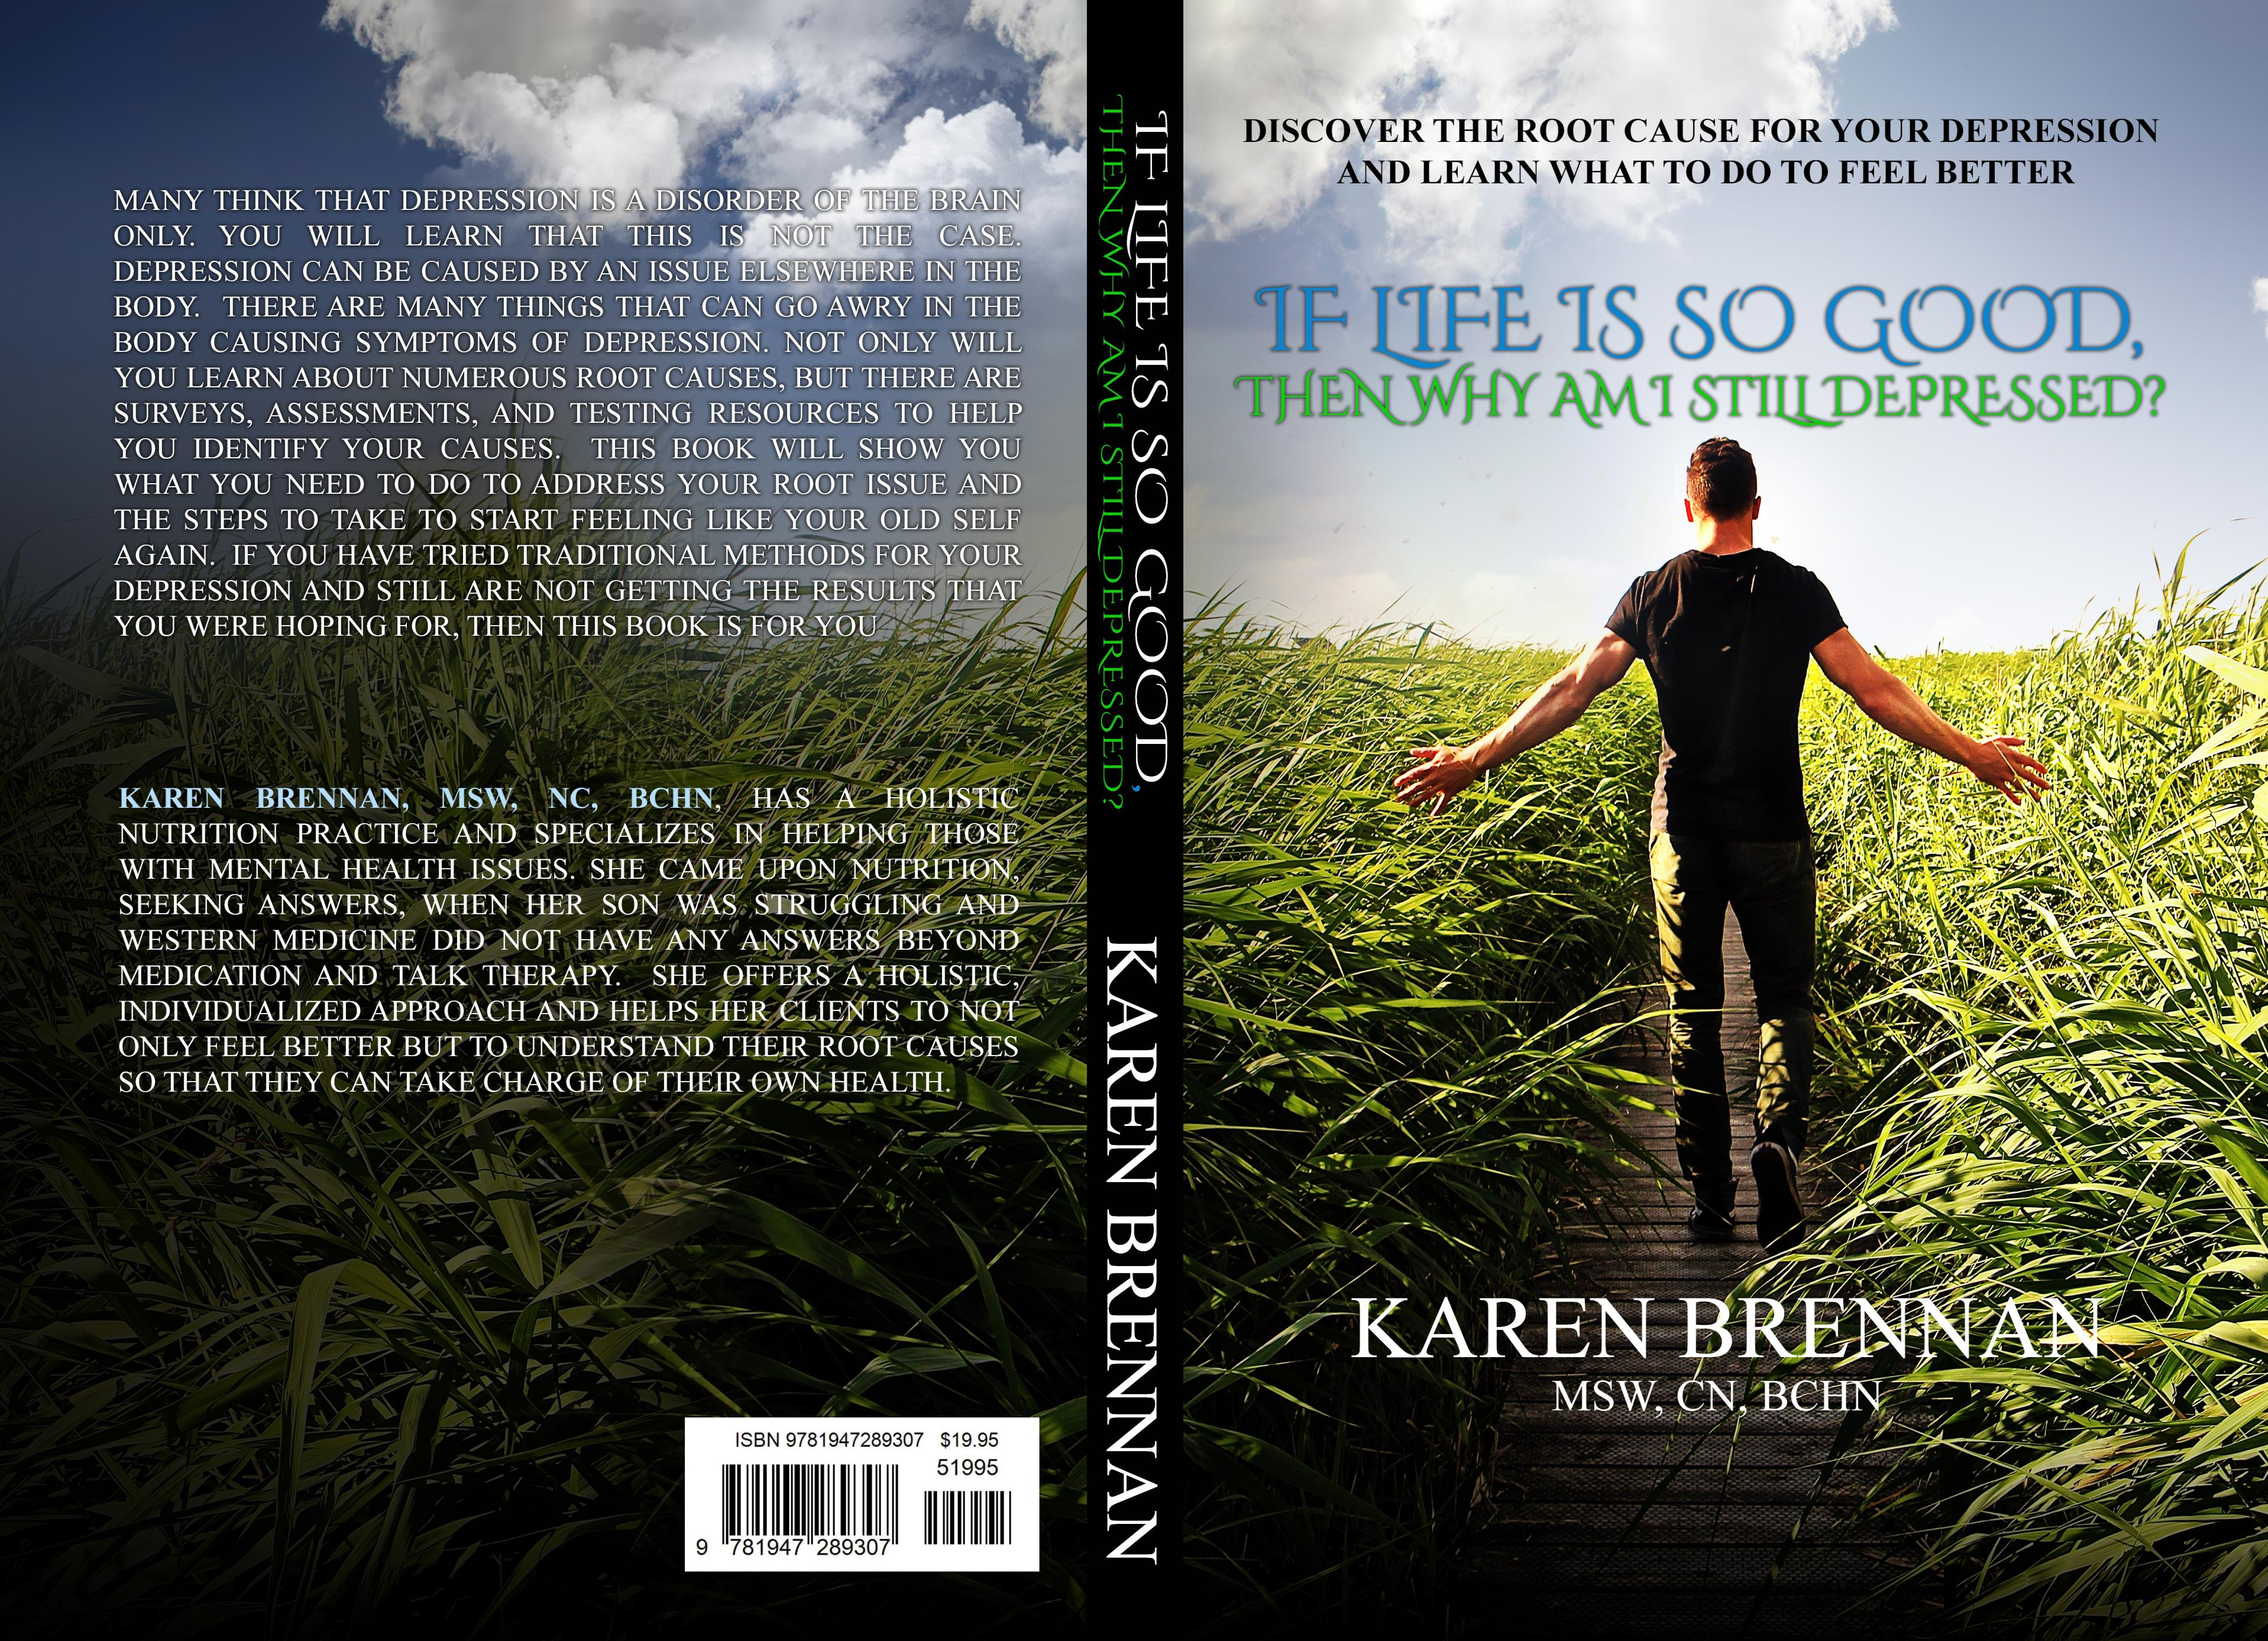 If My Life is So Good, Then Why AM I Still Depressed? Discover the root cause to your depression and leanr what to do to feel better cover image